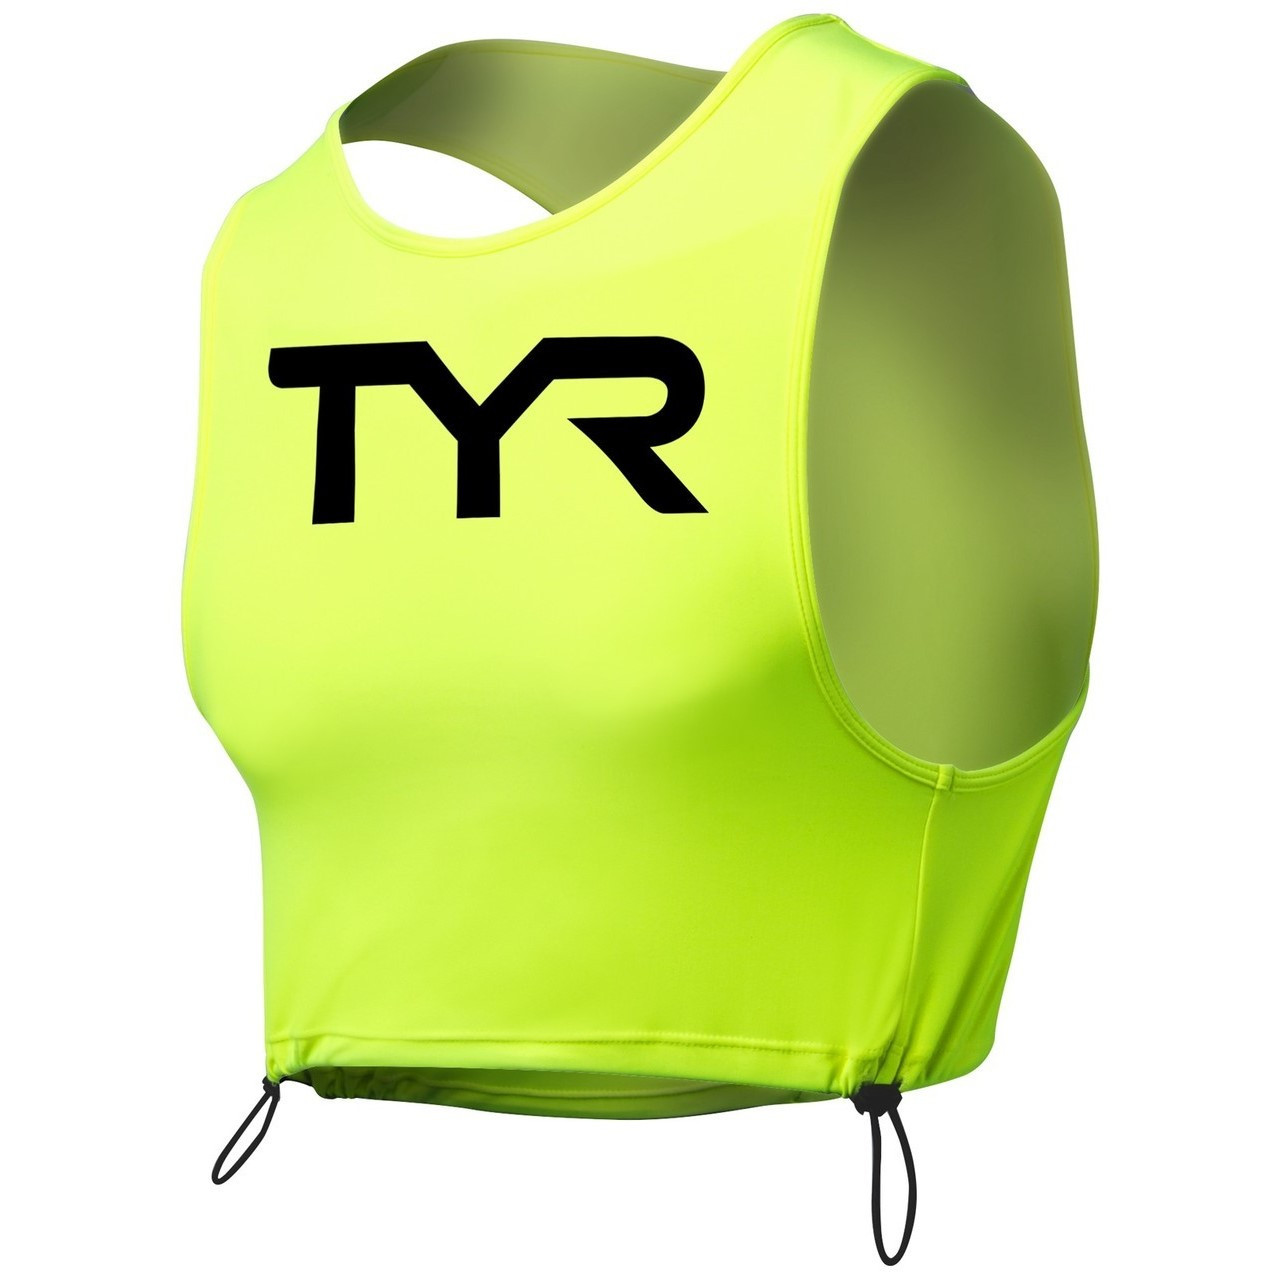 TYR Hi-Vis Open Water Pinnie - 2018 price